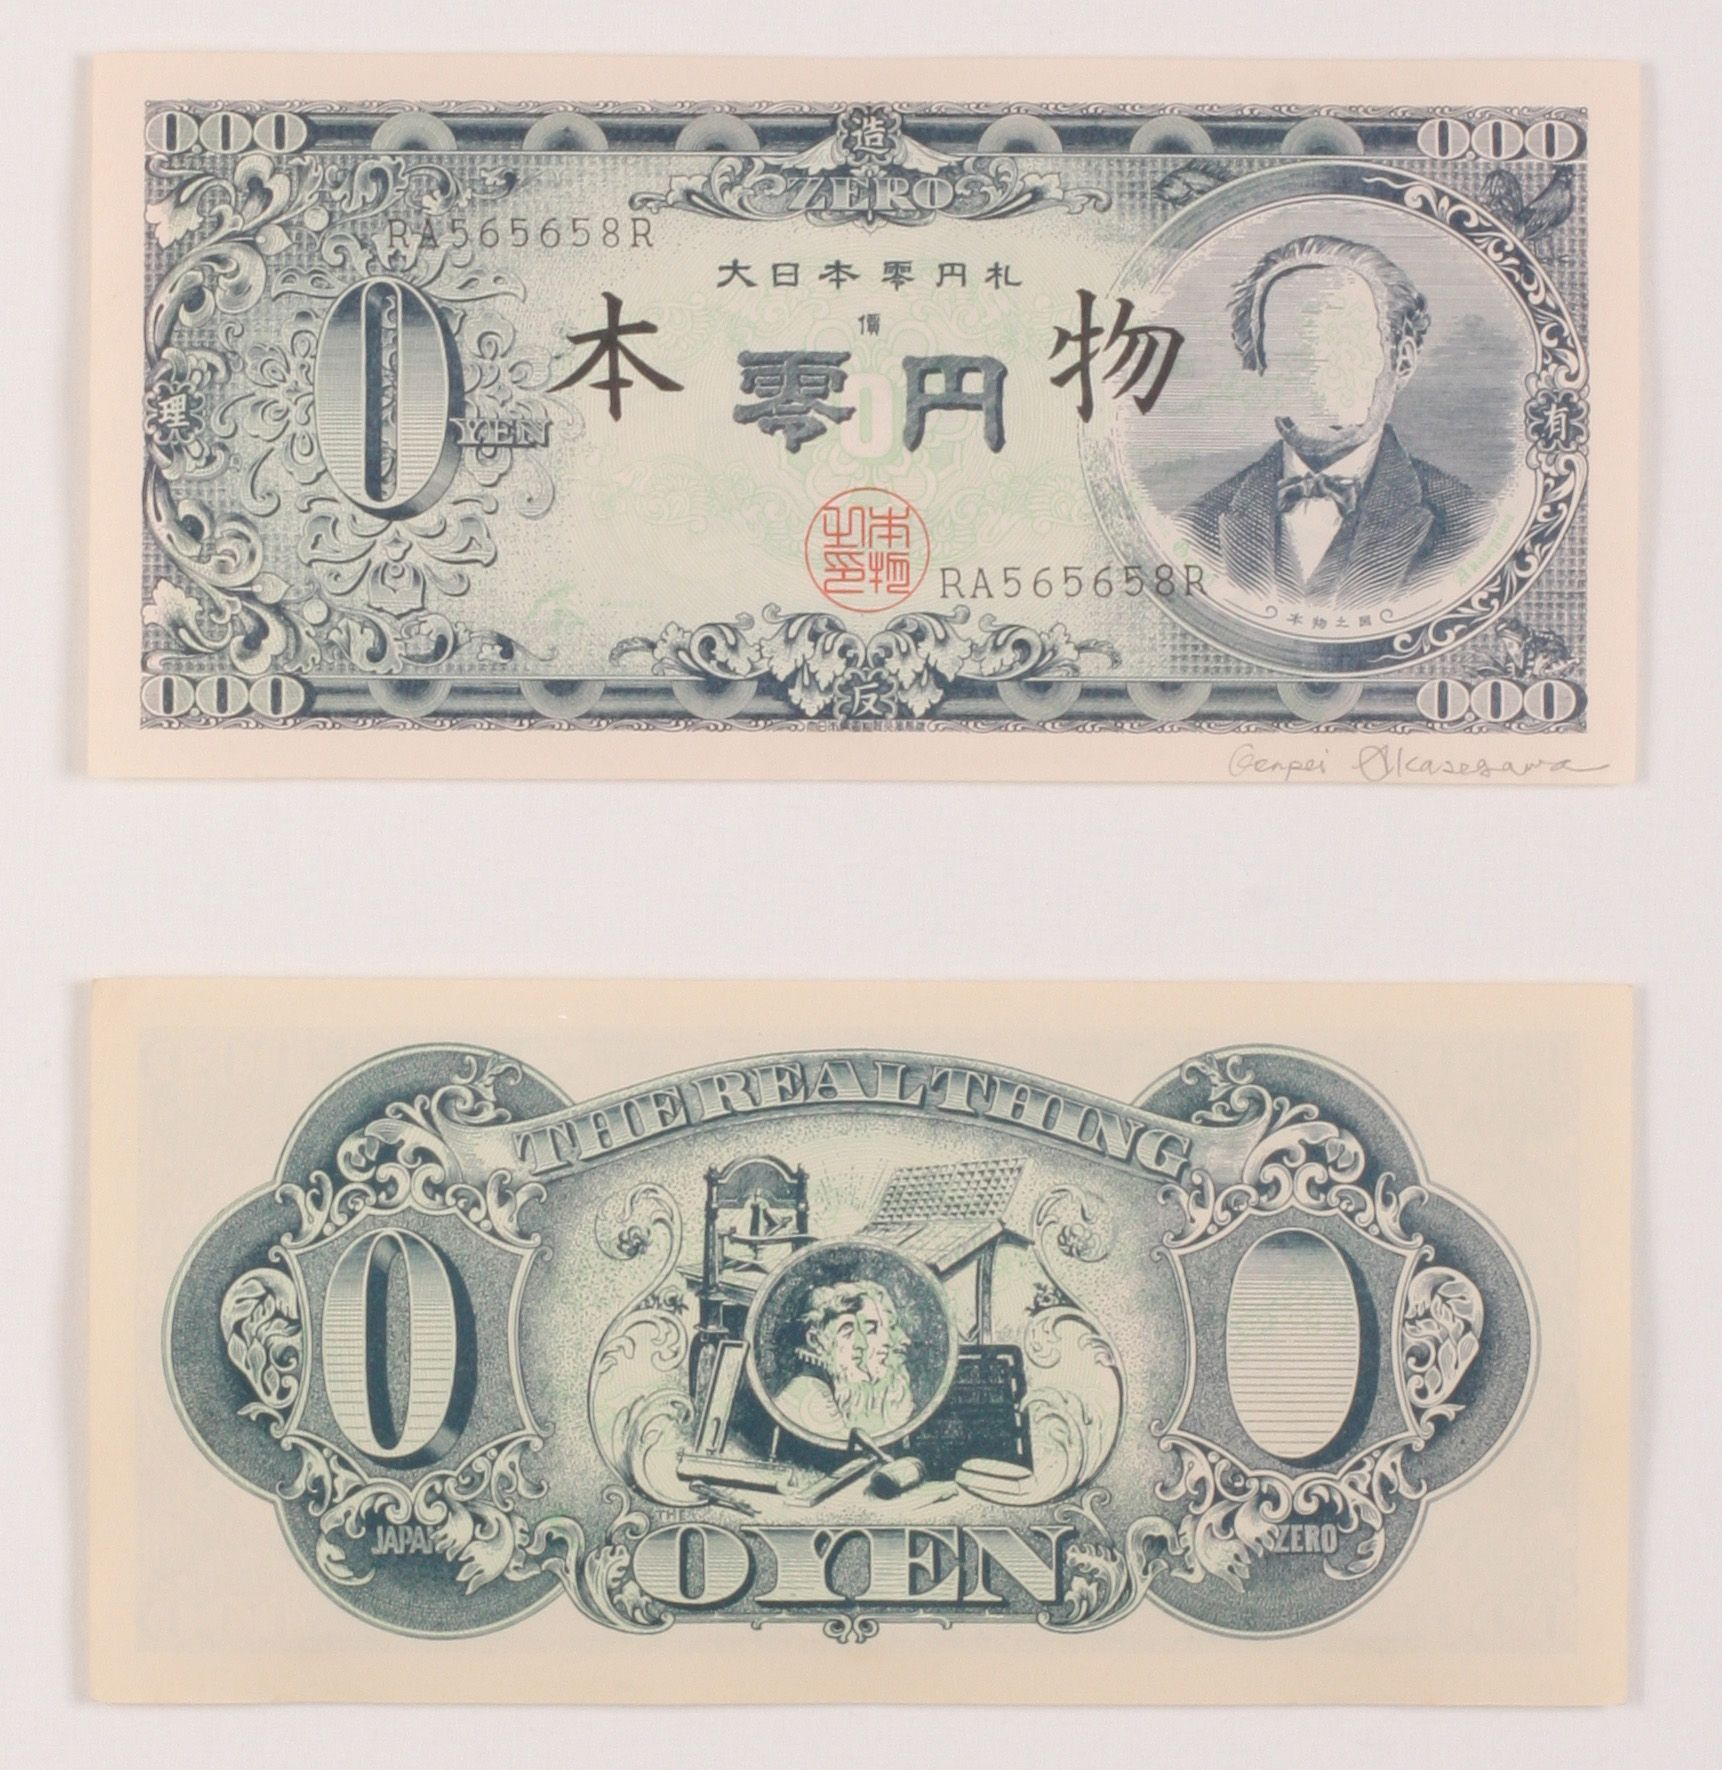 two pieces of currency by genpei akasegawa